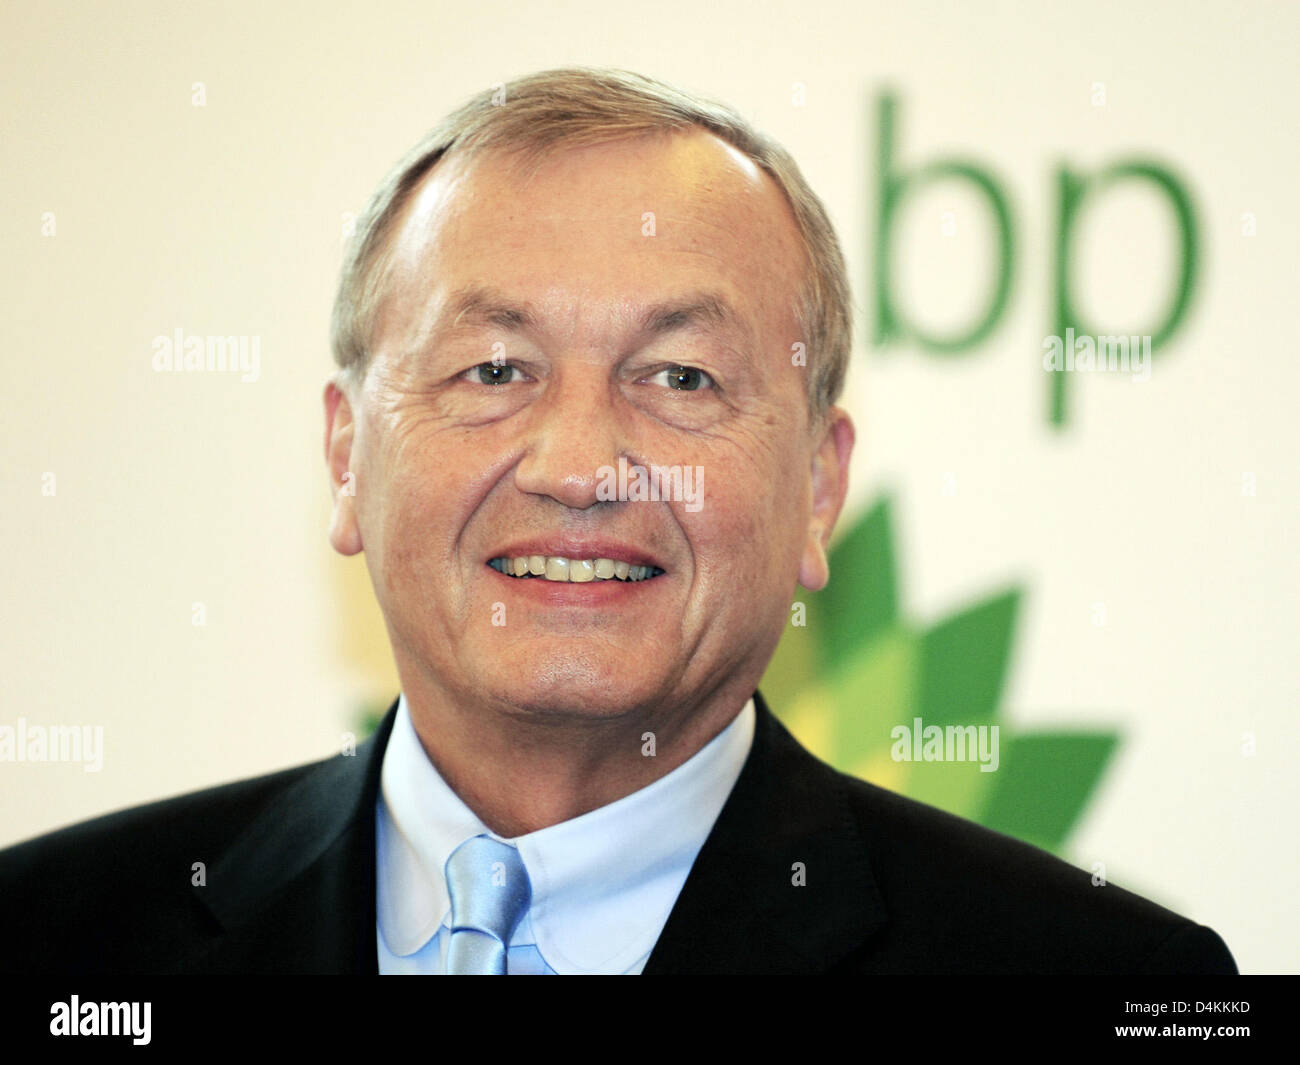 BP Germany CEO Uwe Frank smile at the oil company?s annual press conference in Duesseldorf, Germany, 05 May 2009. - Stock Image